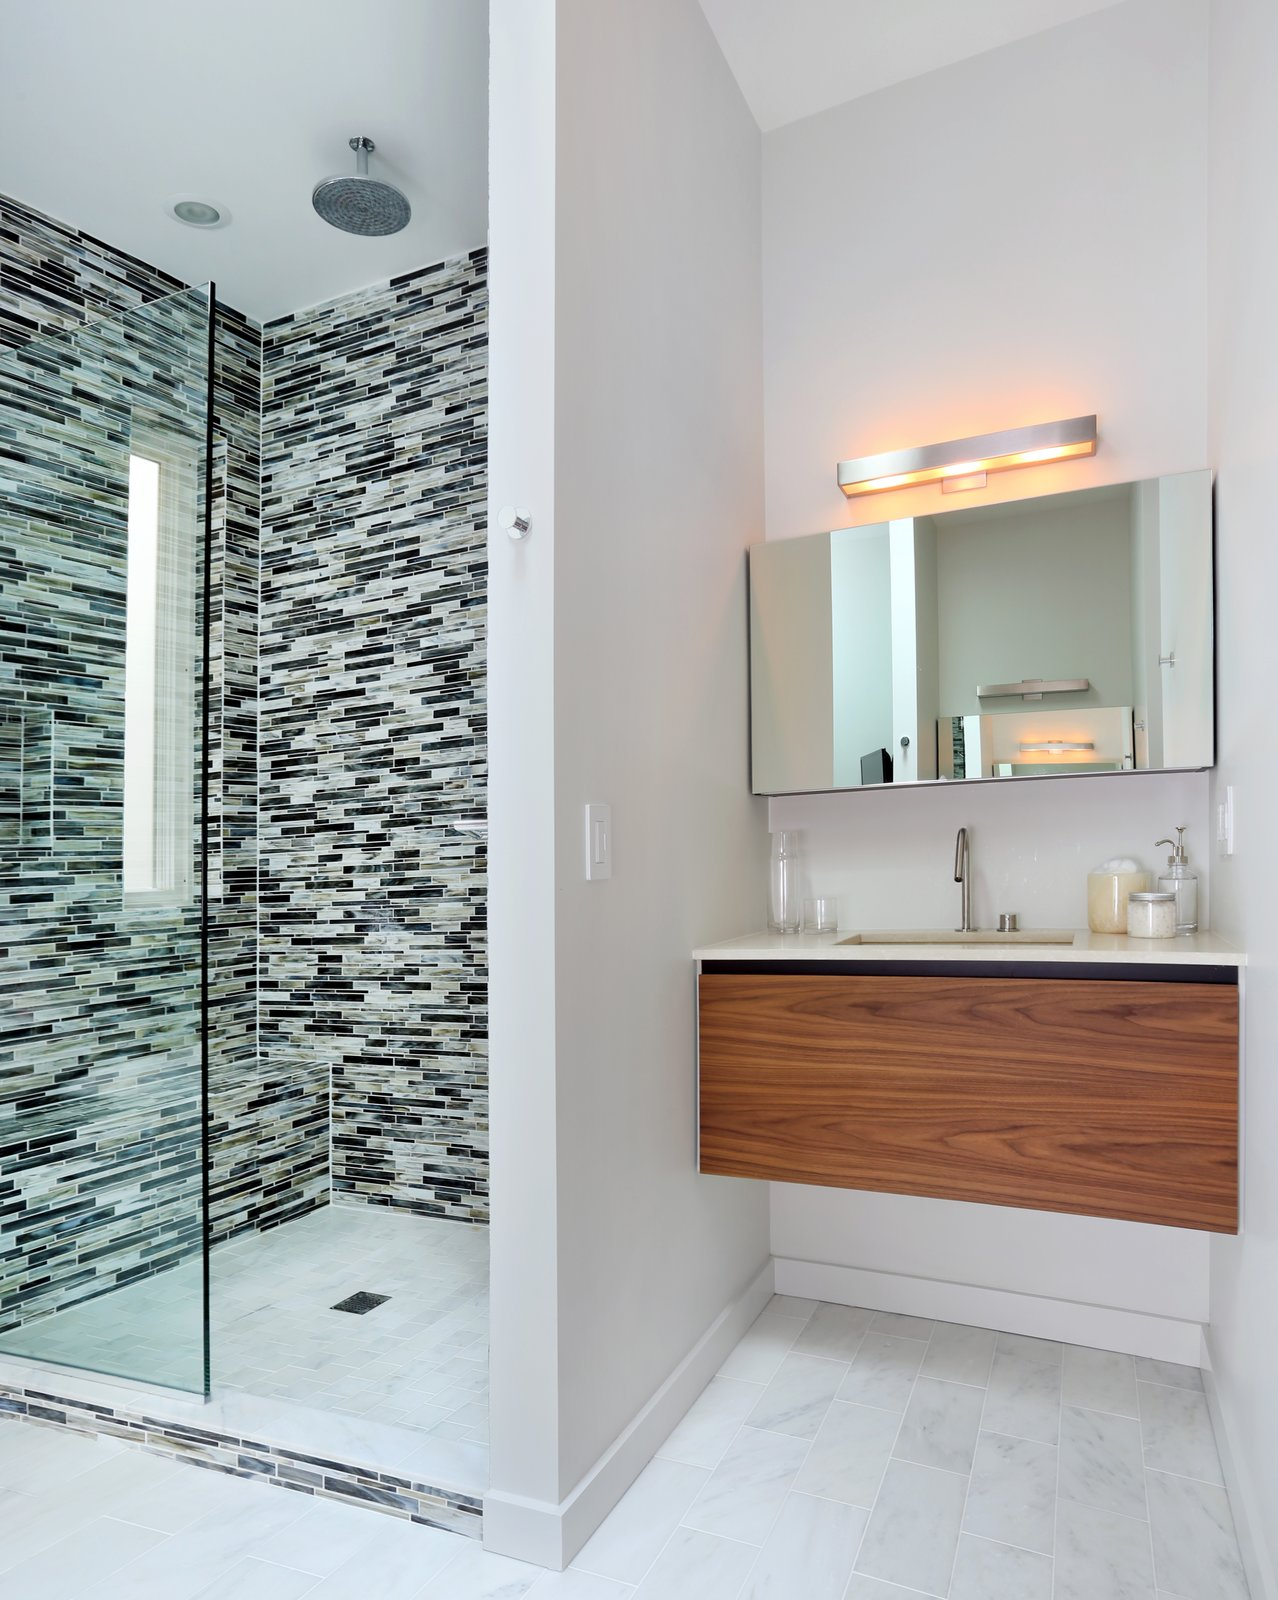 In the master bathroom, glass tile clads the shower and Carrara marble lines the floor. The shower fixtures are Hansgrohe.  Lakeview by Diana Budds